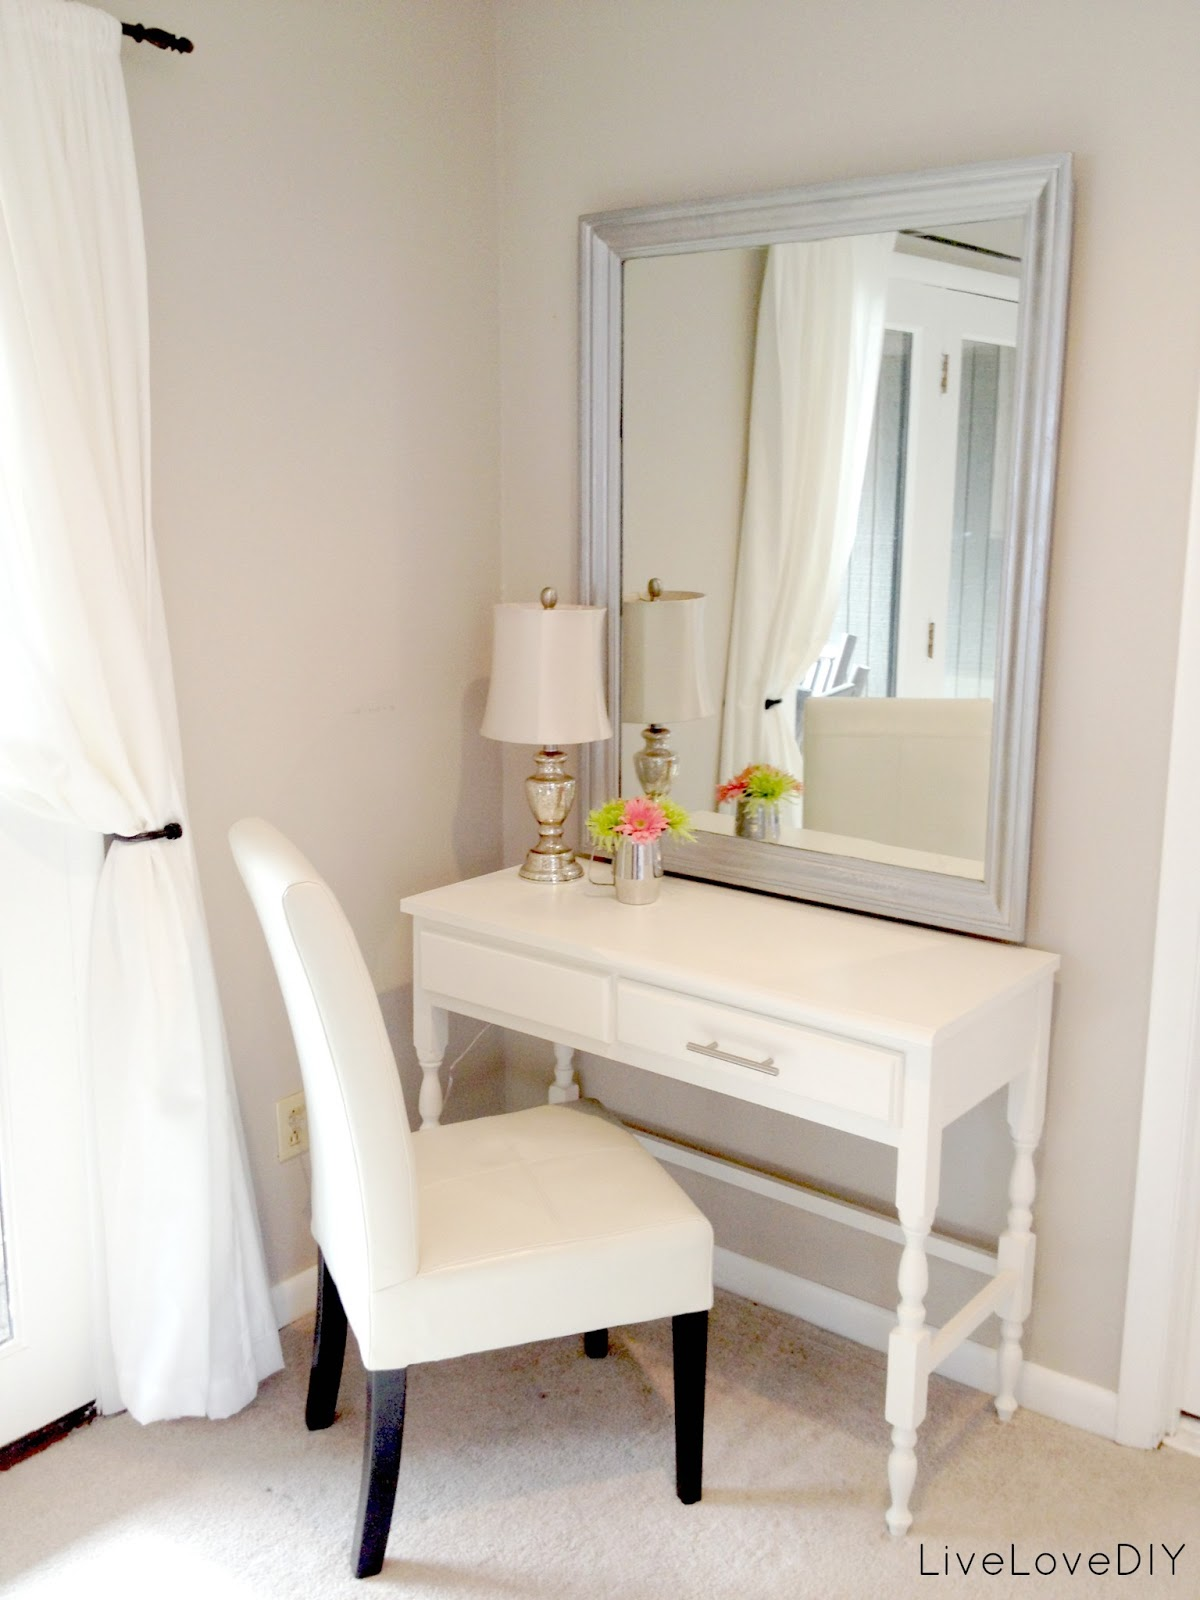 minimalist-white-makeup-vanity-canada-with-white-chairs-and-white-wall-for-minimalist-bedroom-design-contemporary-makeup-vanity-canada-for-your-bedroom-decor-ideas-small-makeup-van